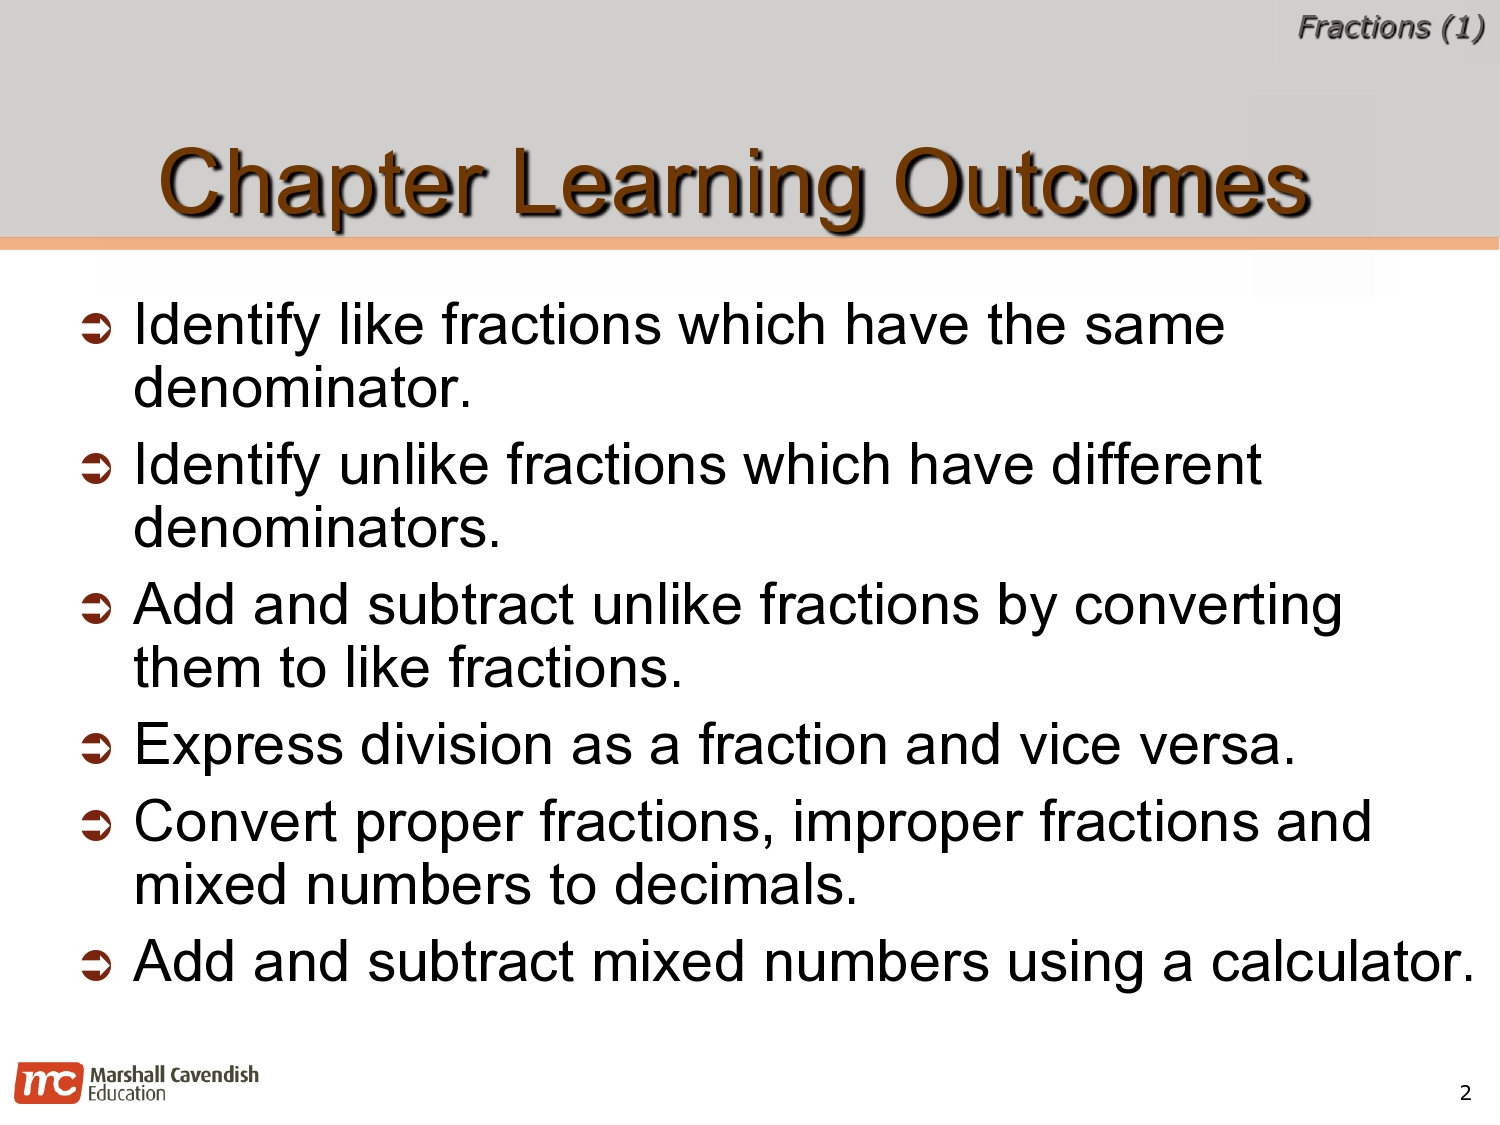 EDP 2013 Primary 6 Fabulous: Math Revision Notes: Fractions (1)